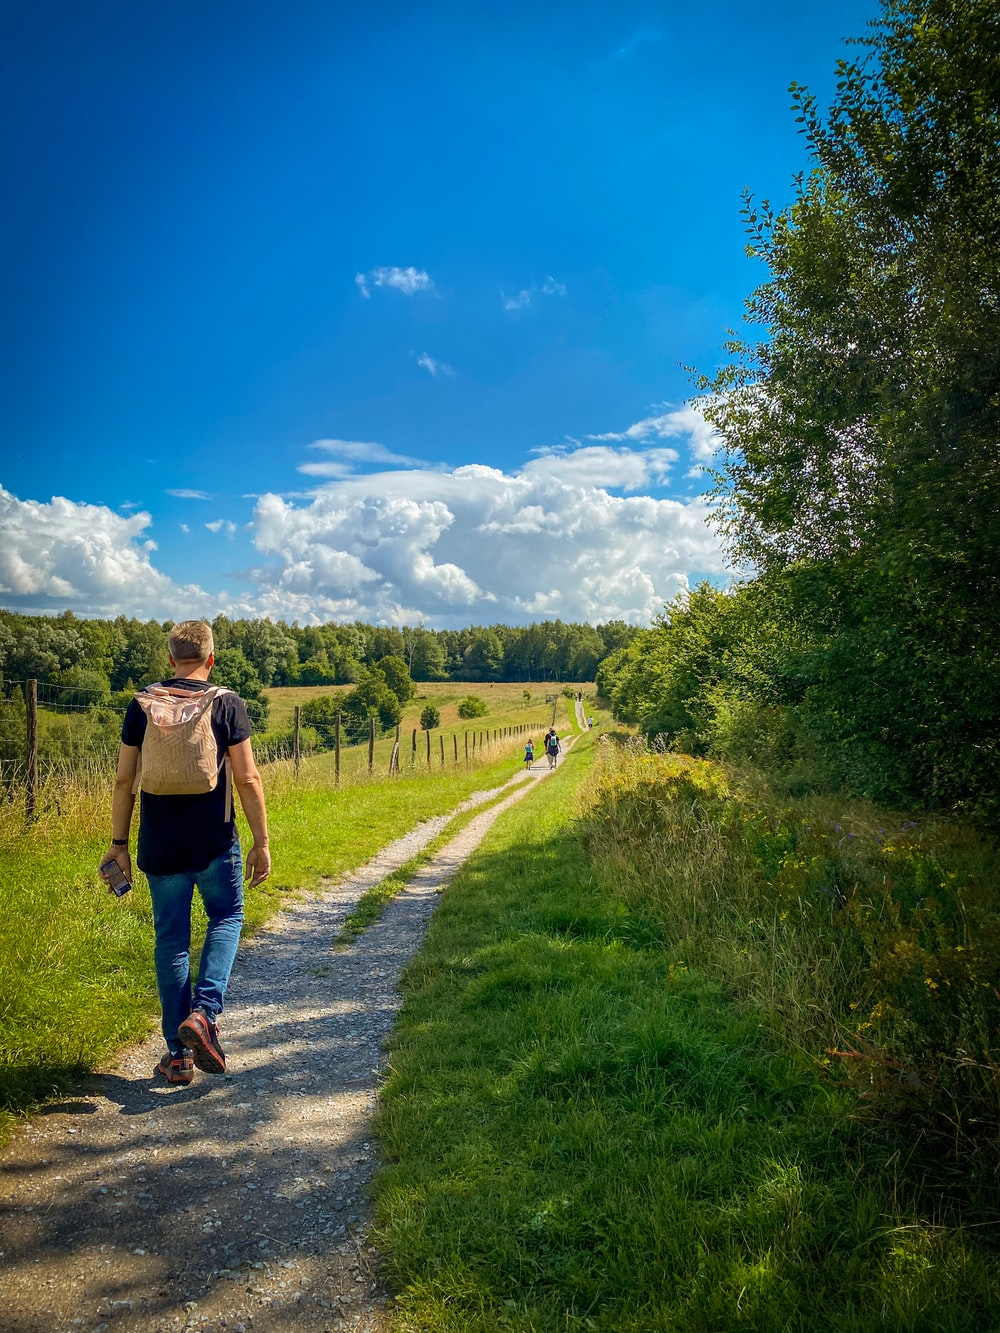 man in brown t-shirt and blue denim shorts walking on pathway between green grass field